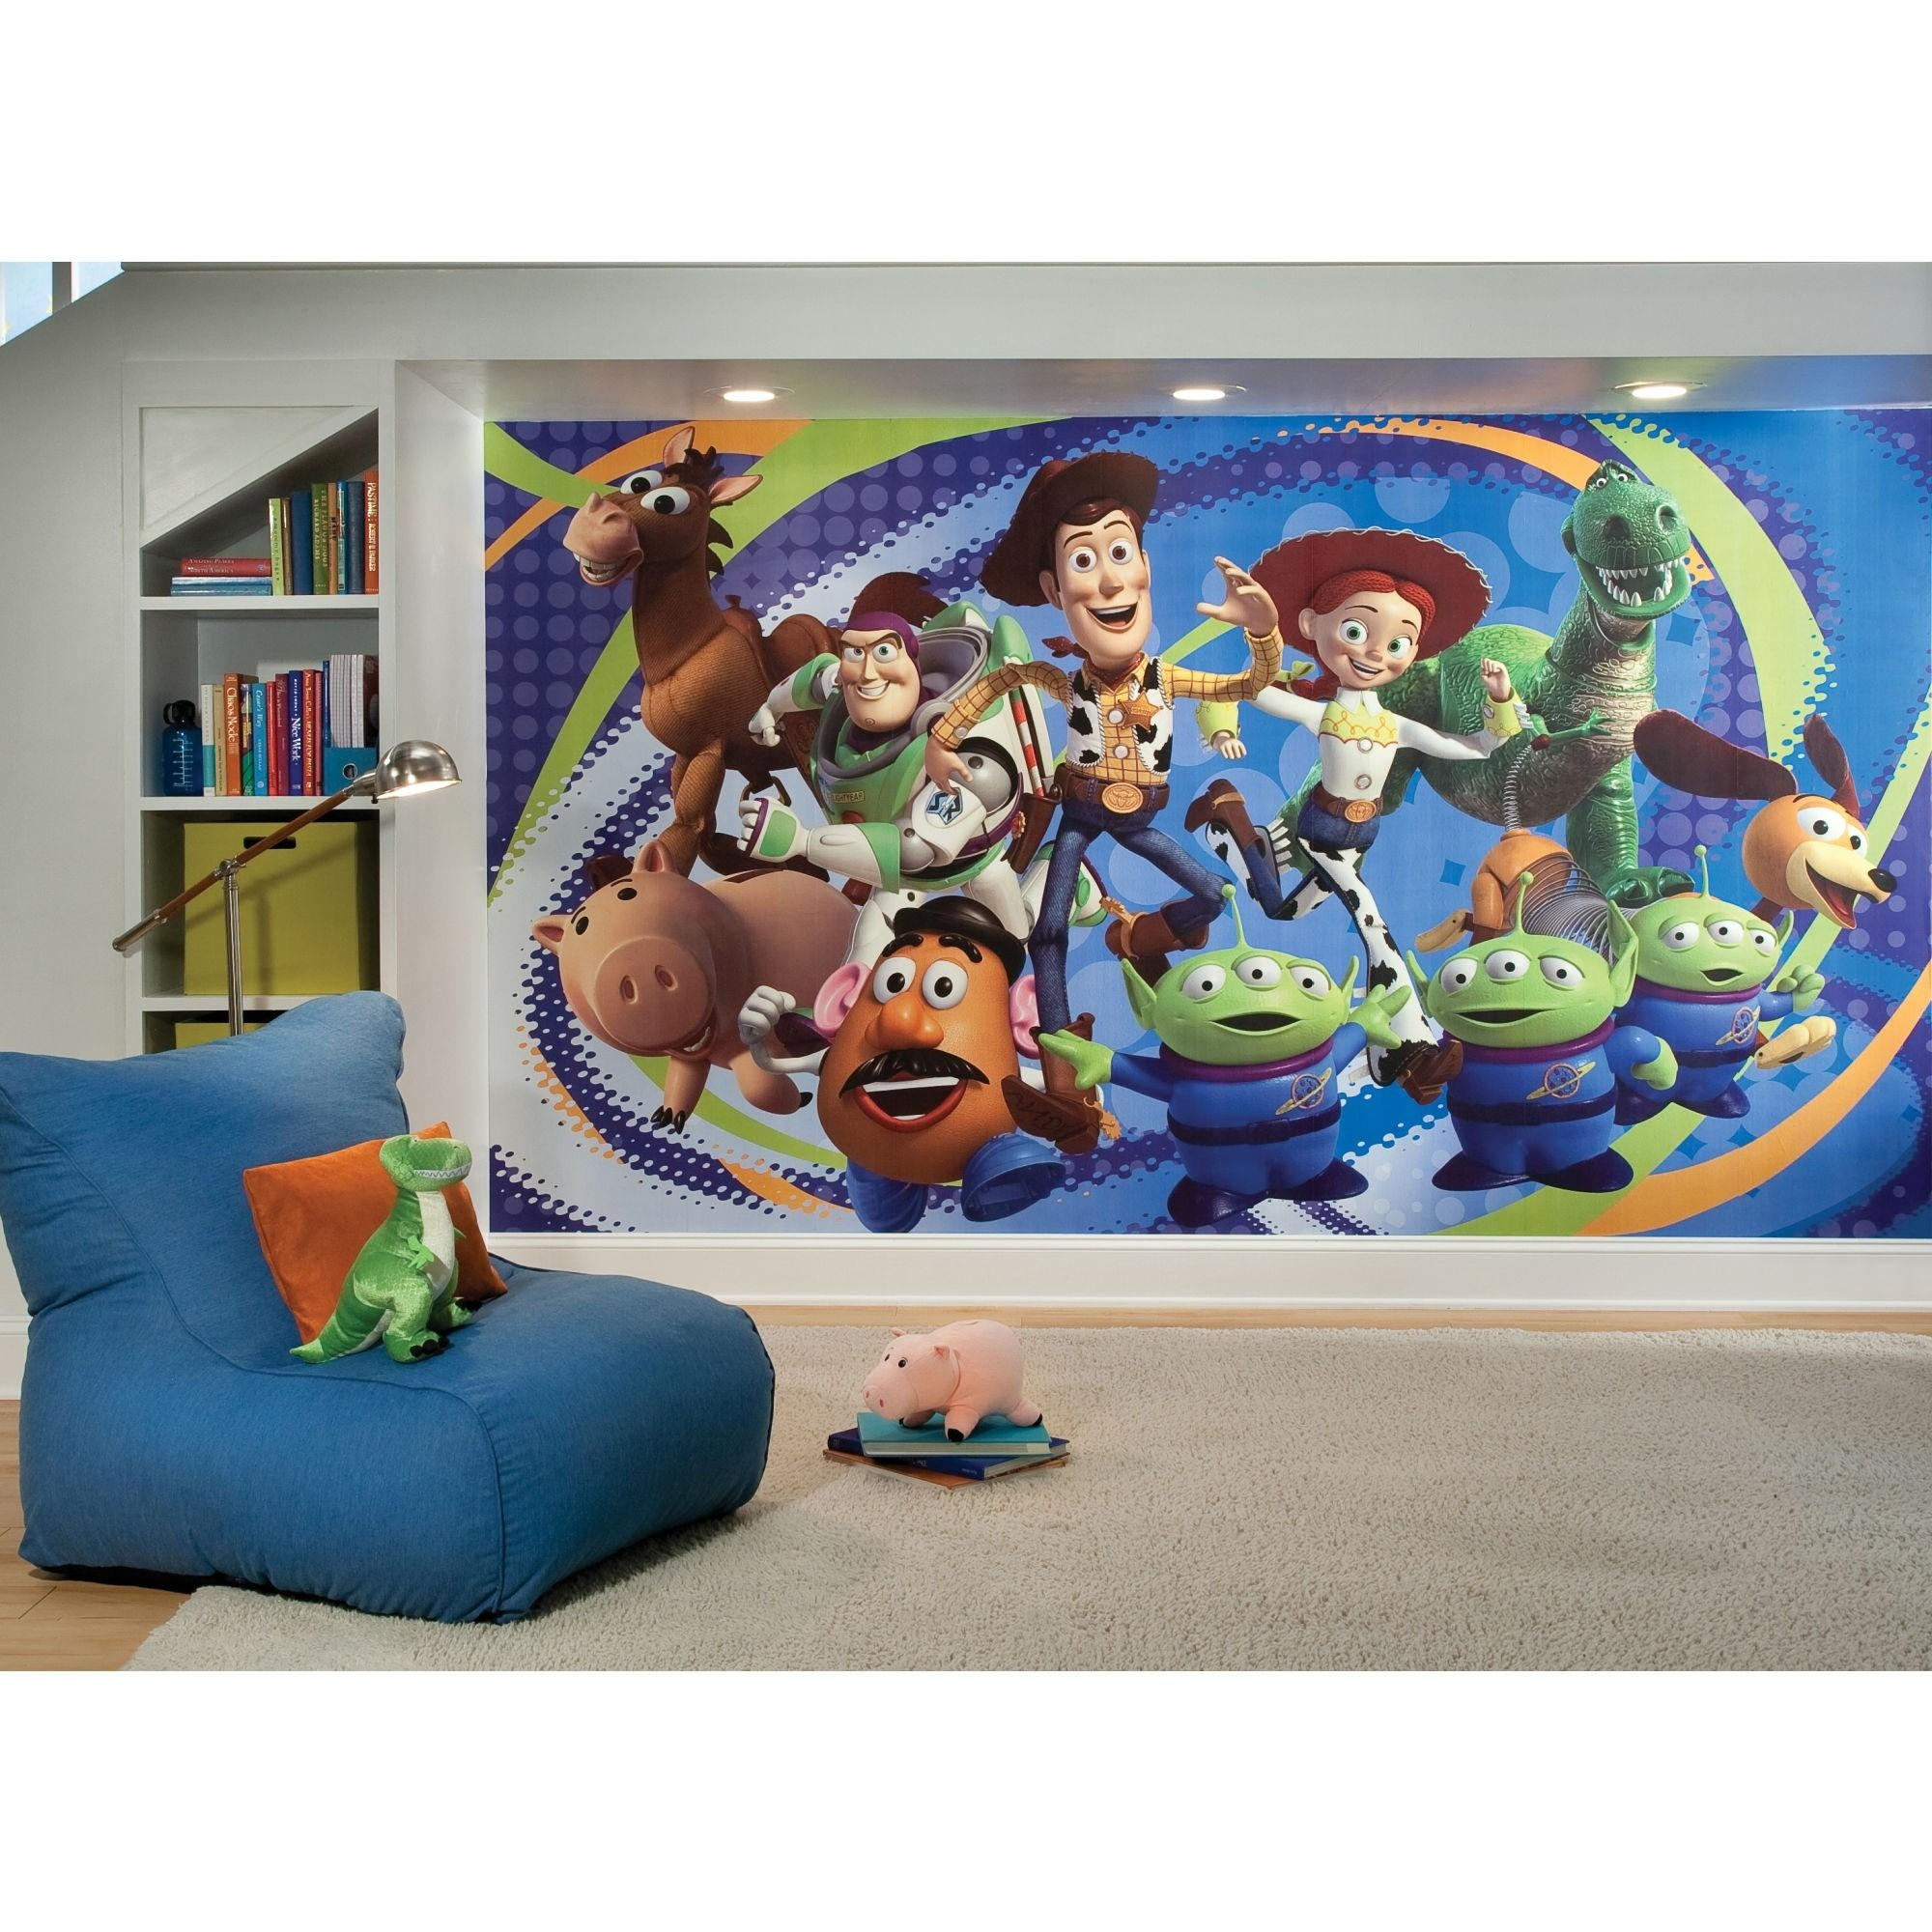 Best Wall Decals Toy Story Photos 2017 – Blue Maize With Regard To Toy Story Wall Stickers (View 6 of 20)